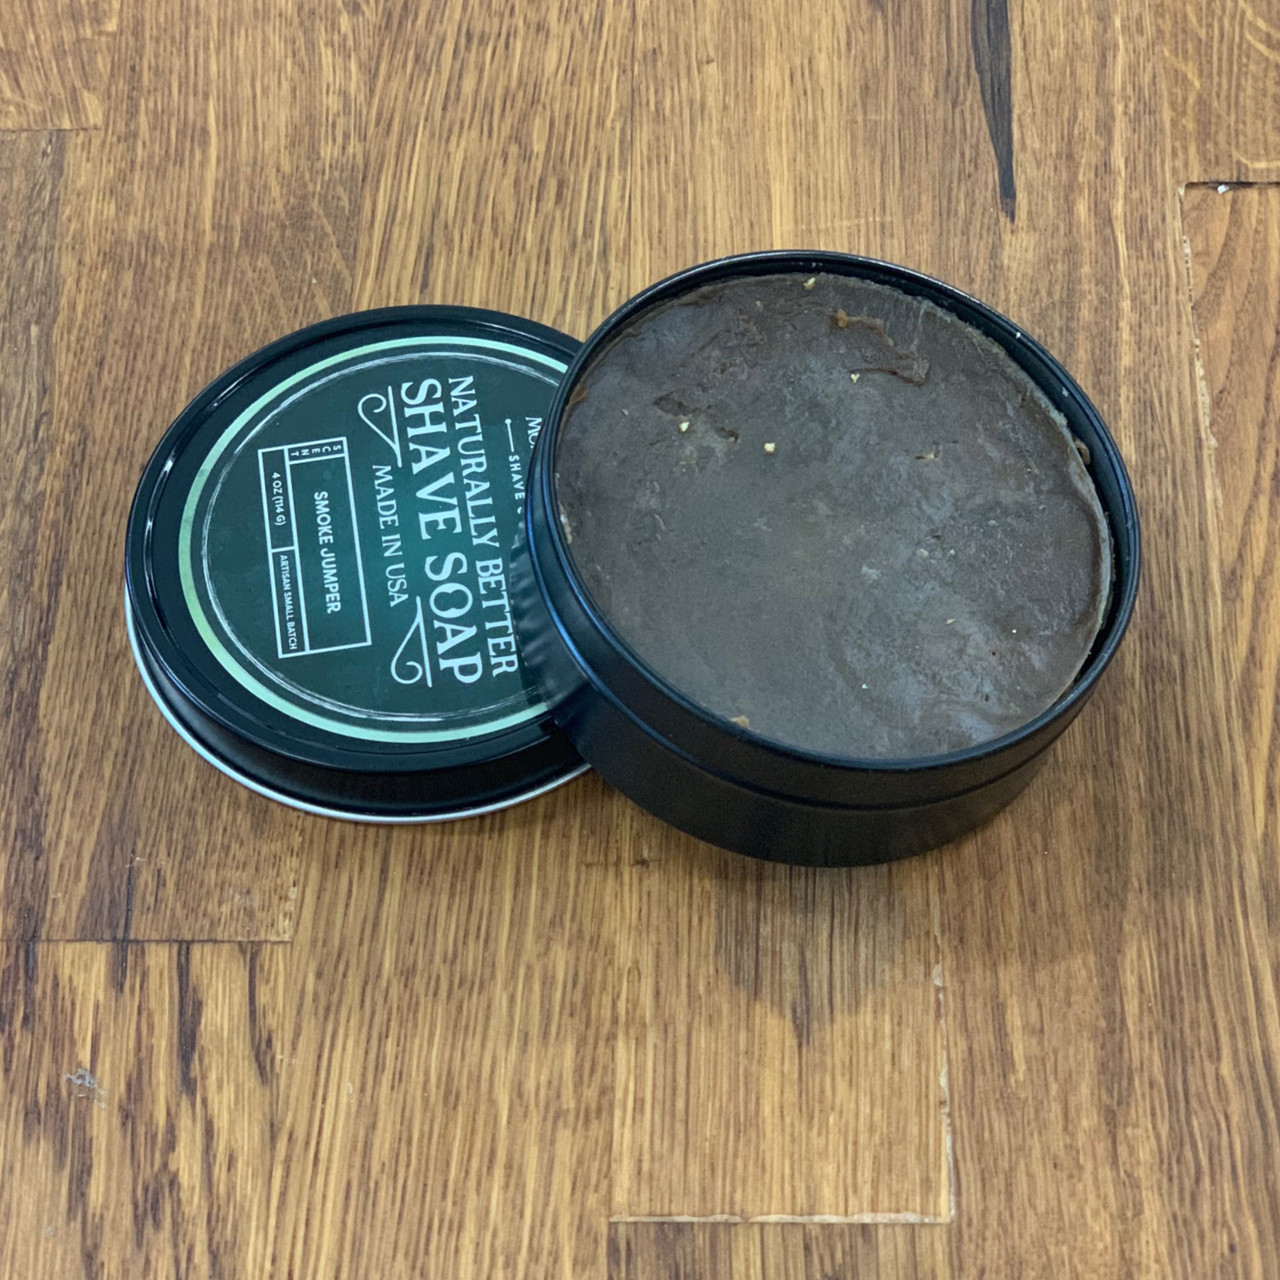 Smoke Jumper (Pine Tar) Artisan Small Batch Shave Soap for a Naturally Better Shave Experience